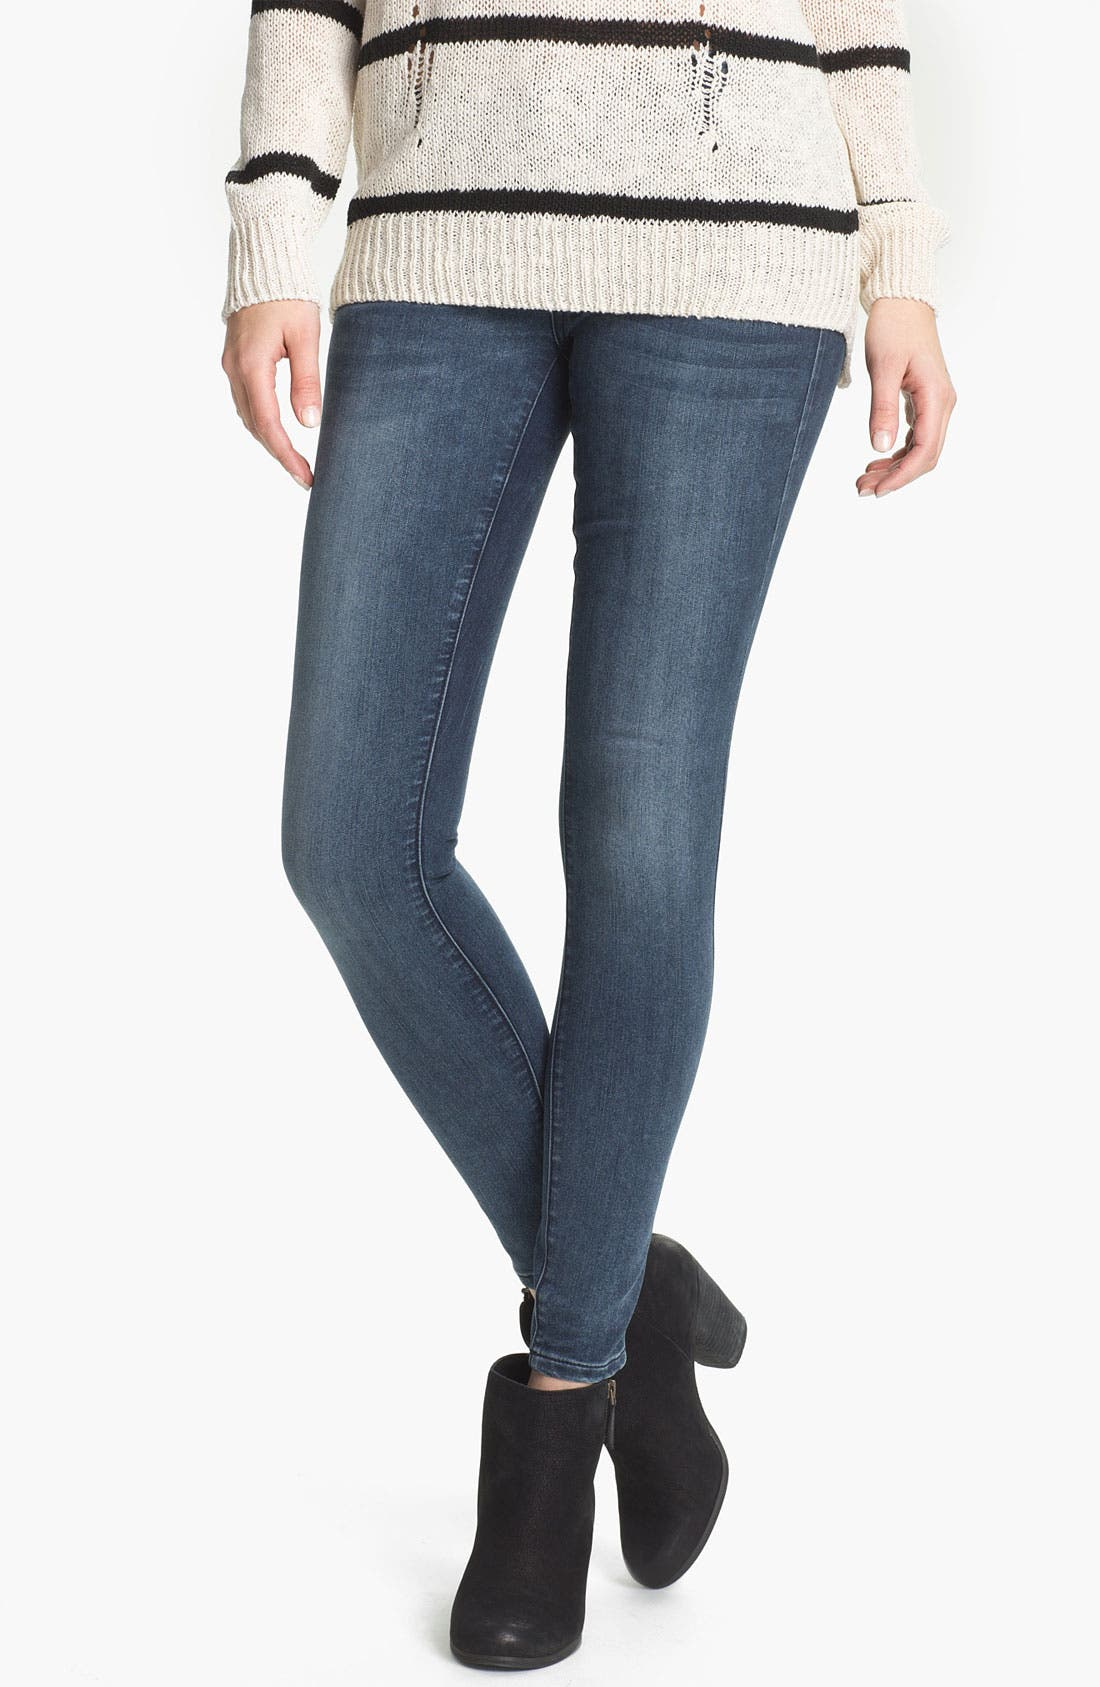 Alternate Image 1 Selected - STS Blue Super Skinny Jeans (Avalon Beach) (Juniors)